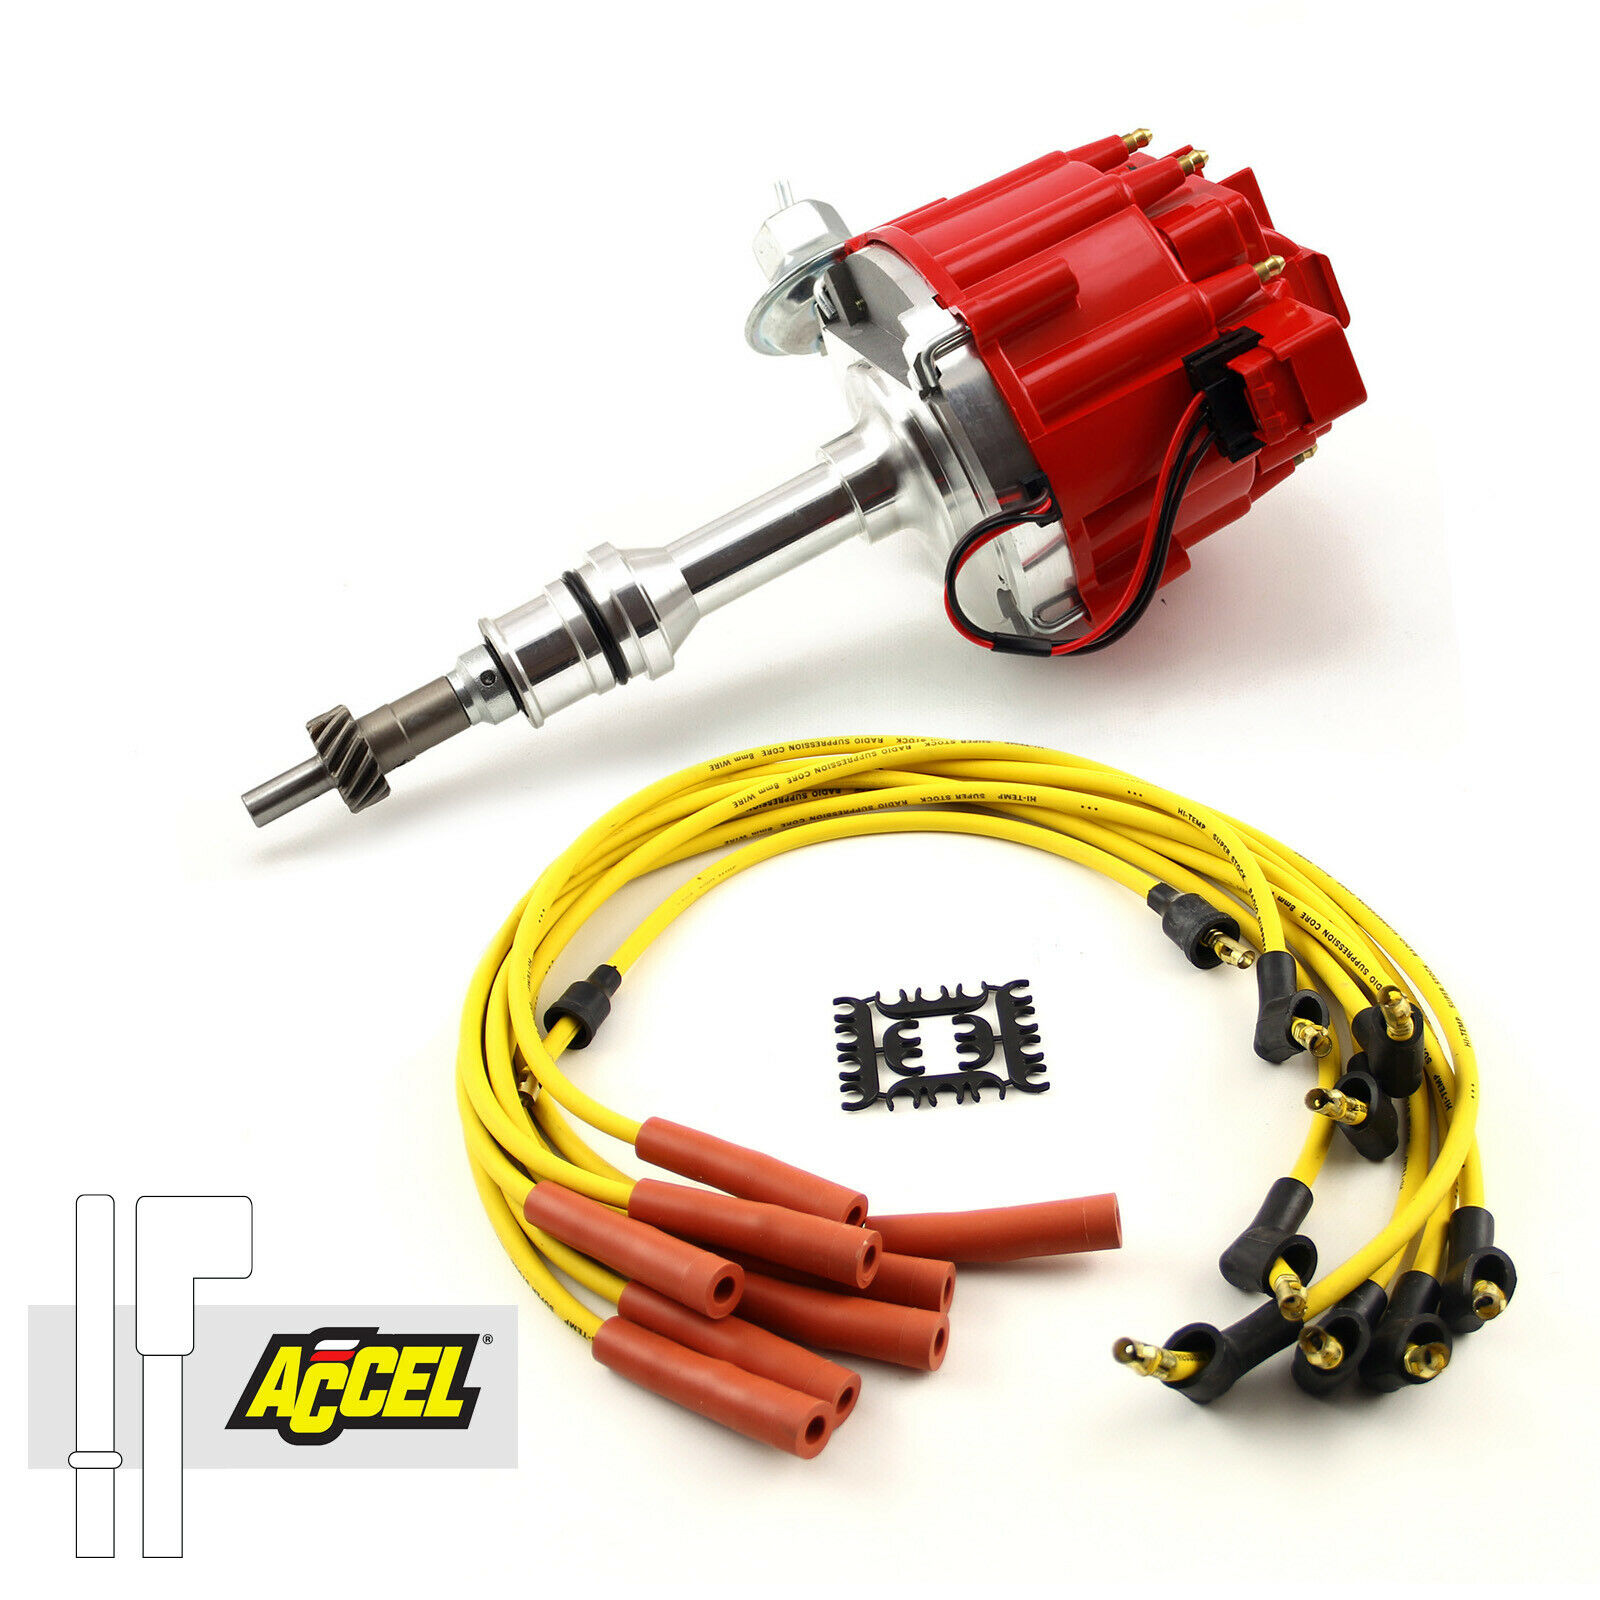 Ford SB 289 302 Windsor HEI Distributor Accel Spark Plug Wire Ignition  Combo Kit